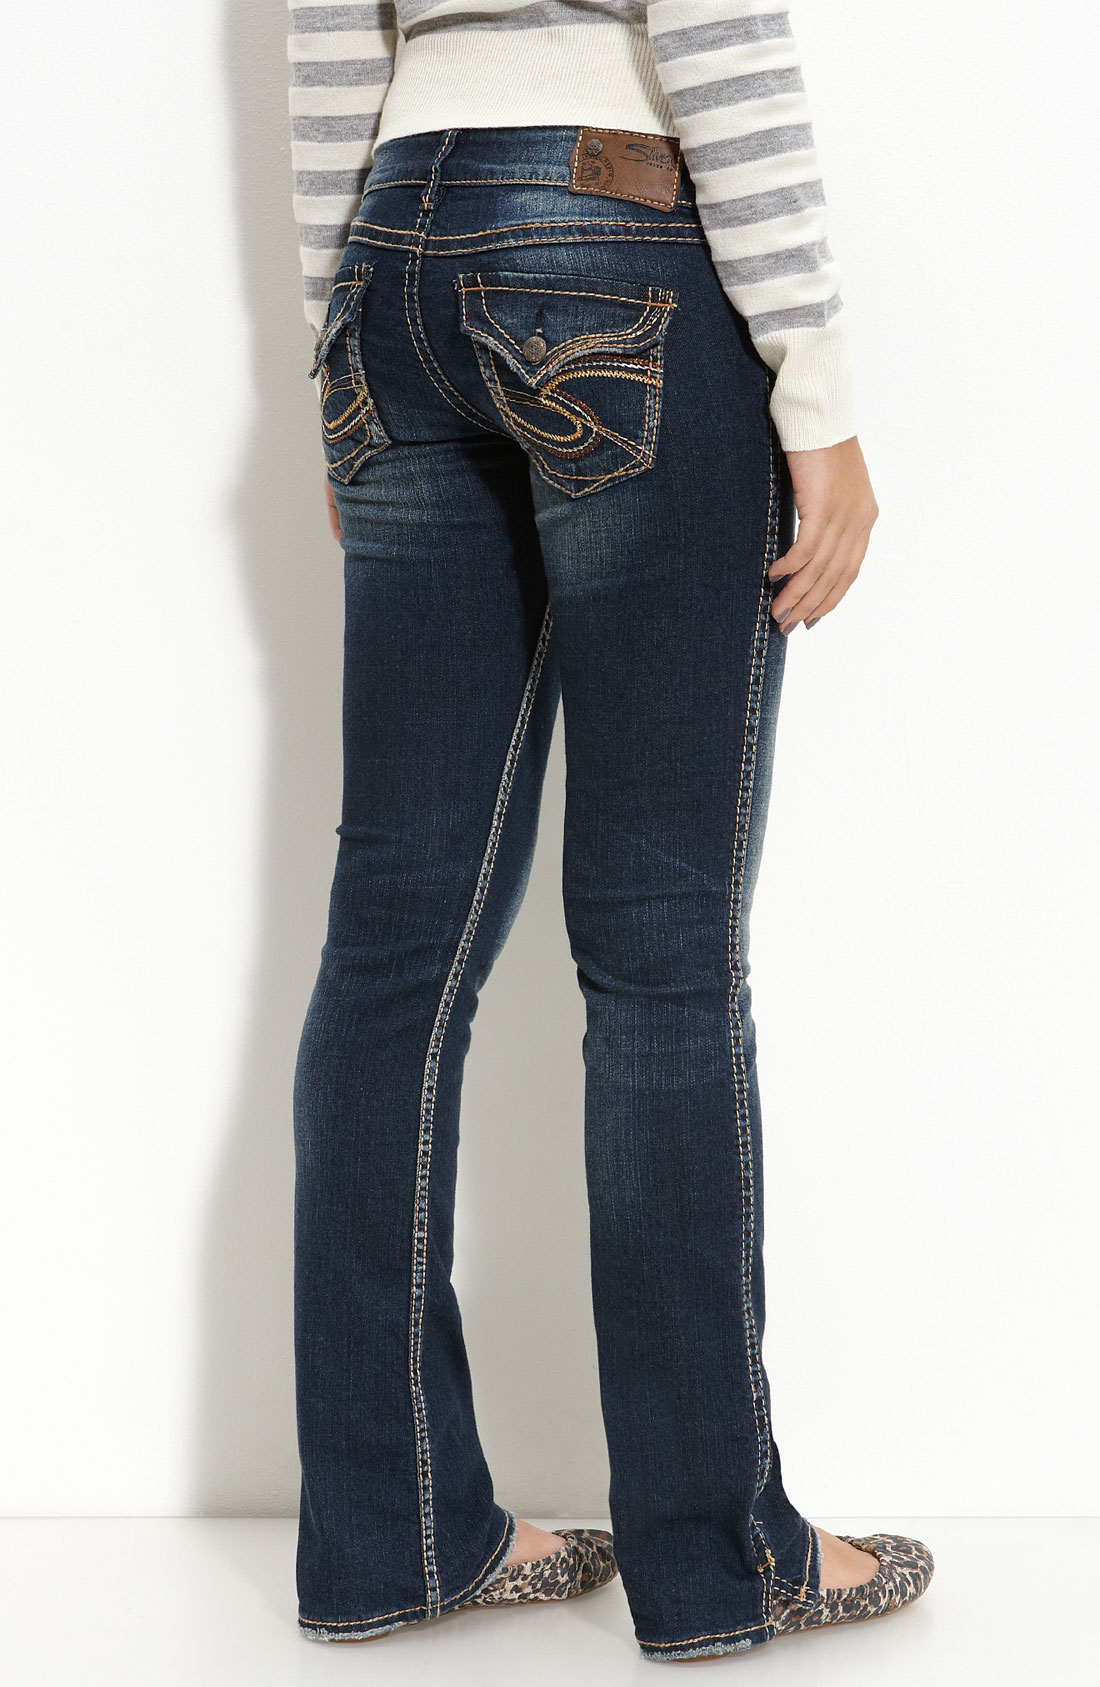 Silver jeans co. Suki Mid-rise Bootcut Jeans in Blue | Lyst